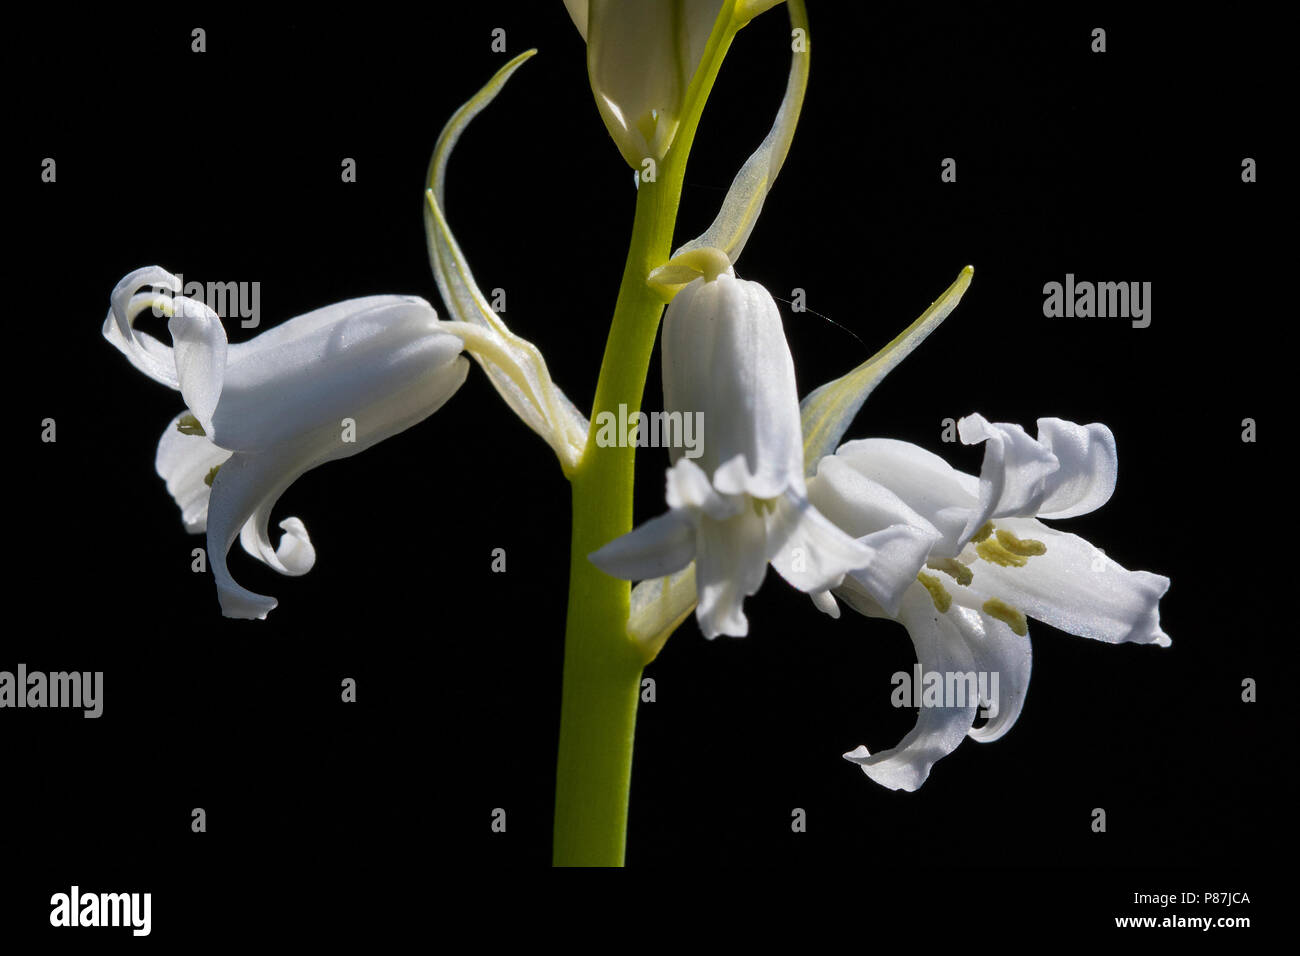 White flower against dark background in the Netherlands. Stock Photo